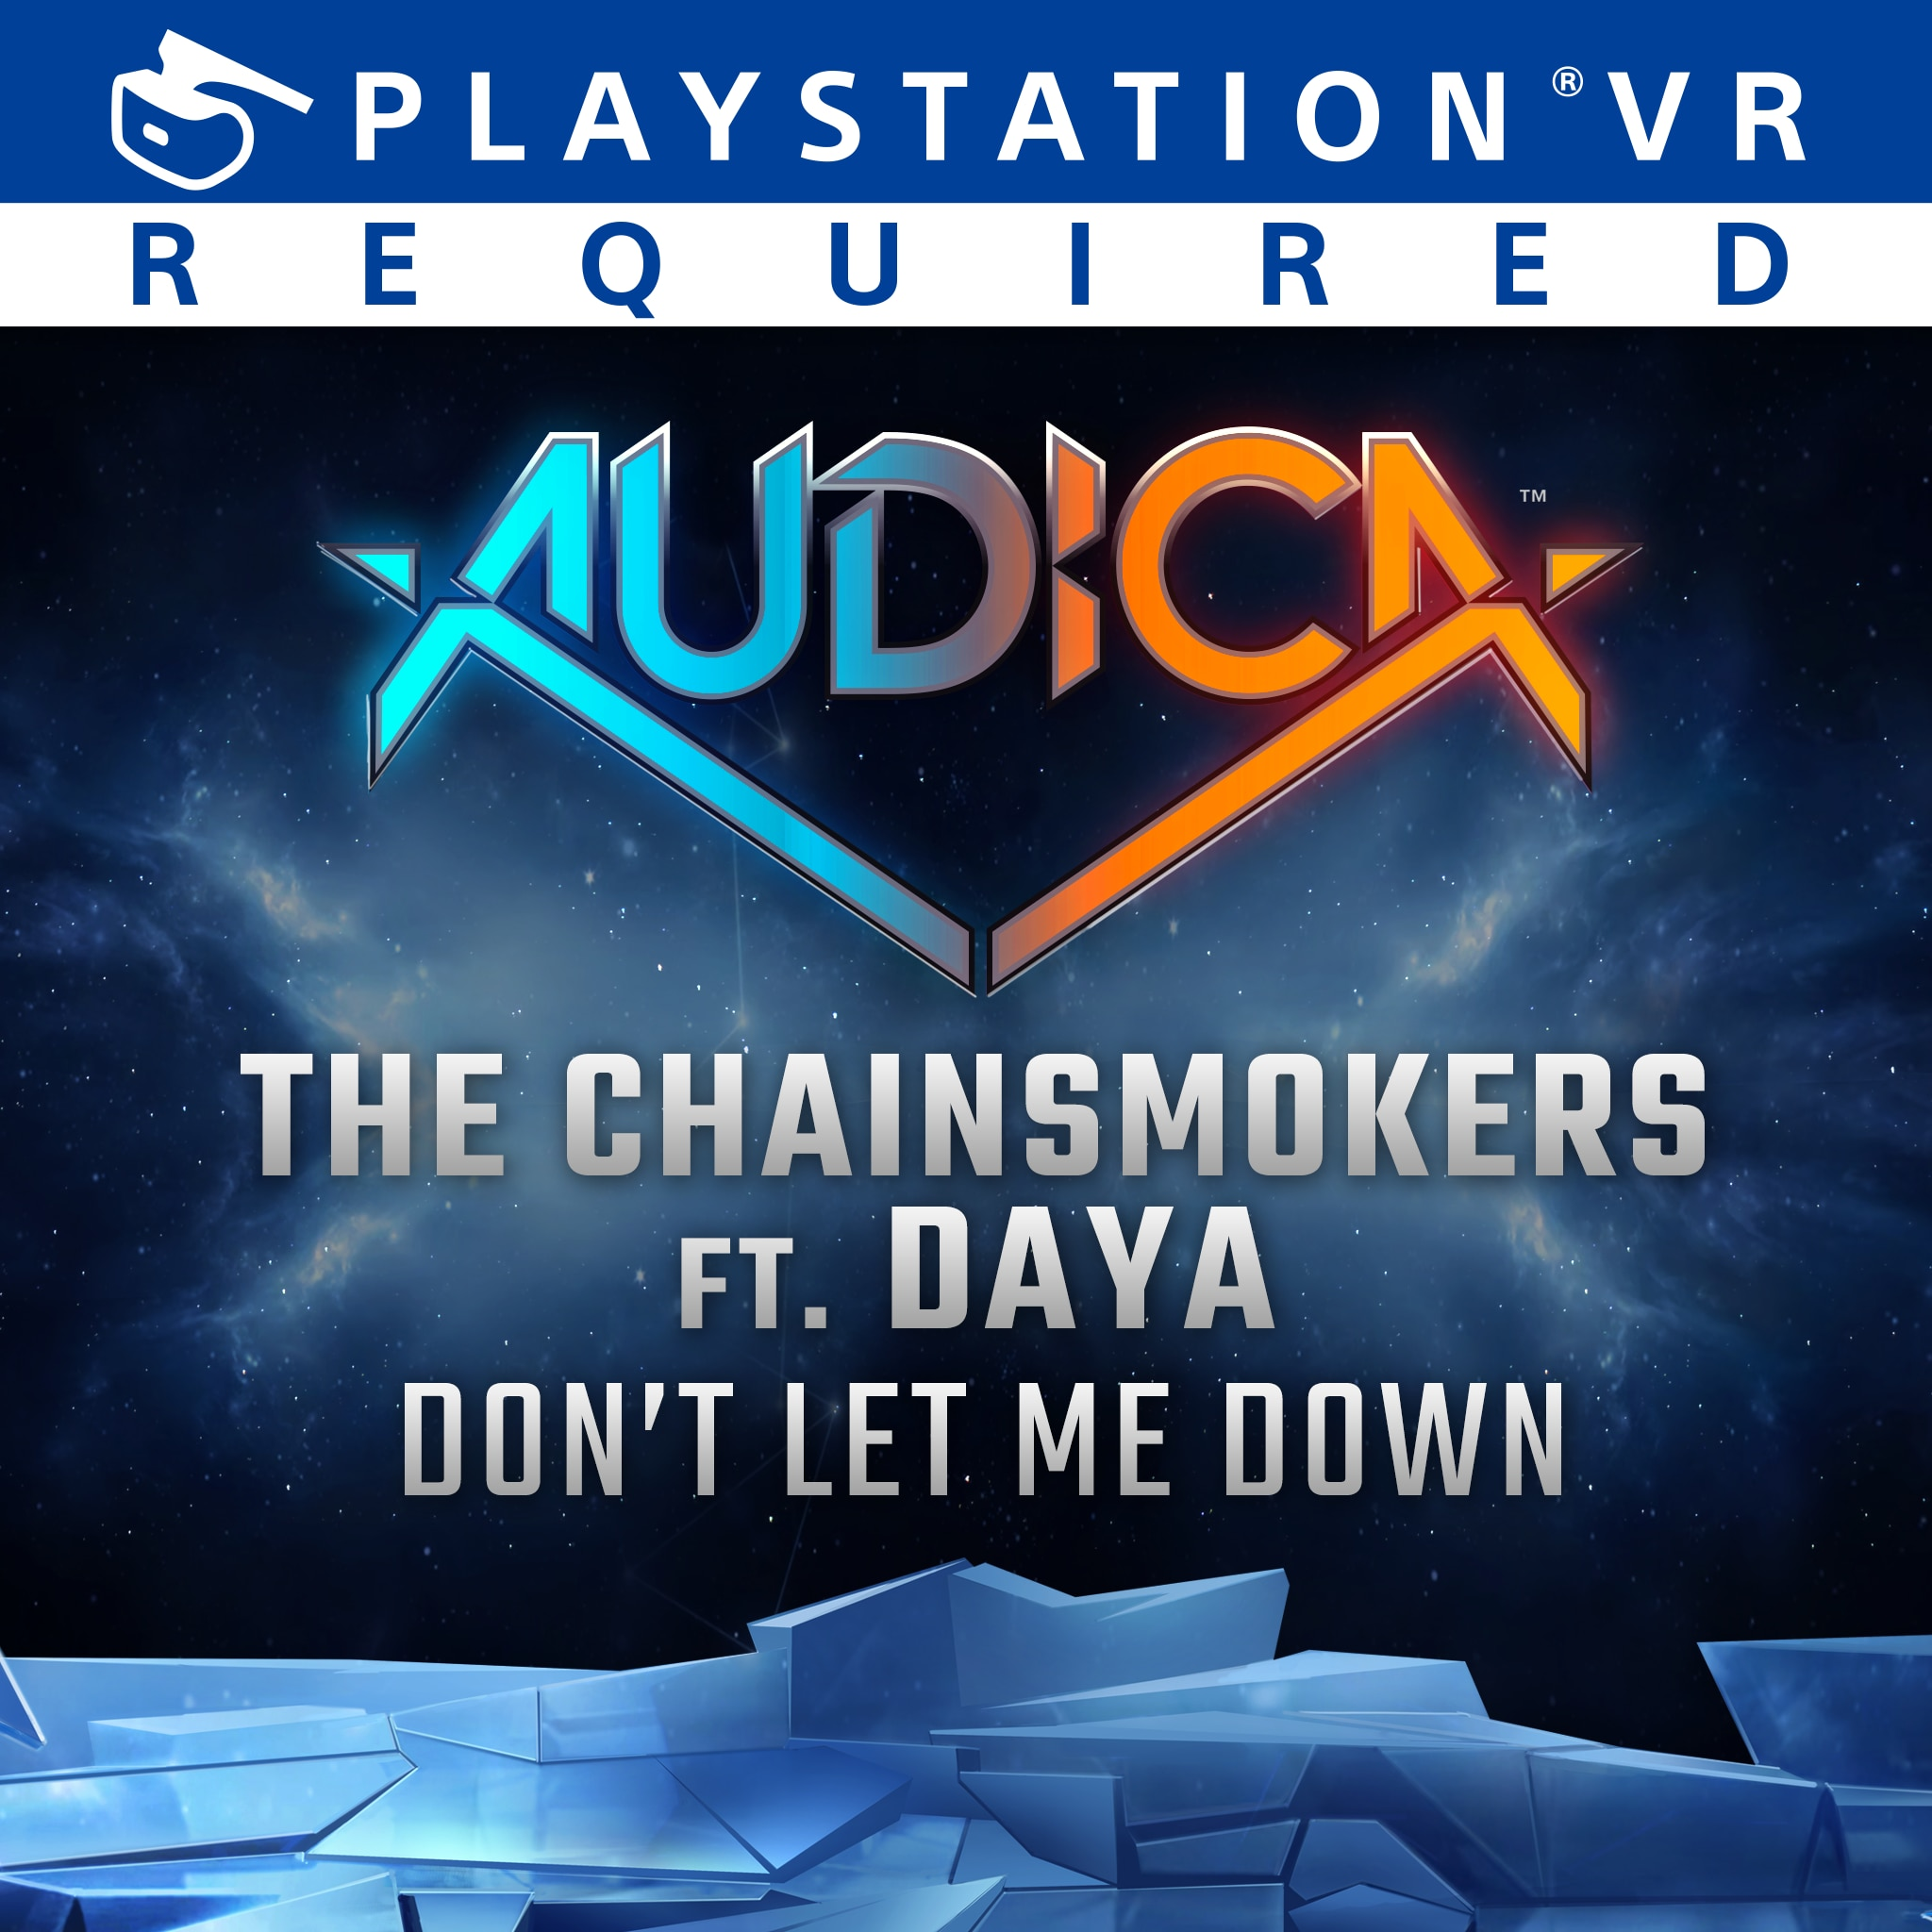 AUDICA™ : 'Don't Let Me Down' - The Chainsmokers ft. Daya